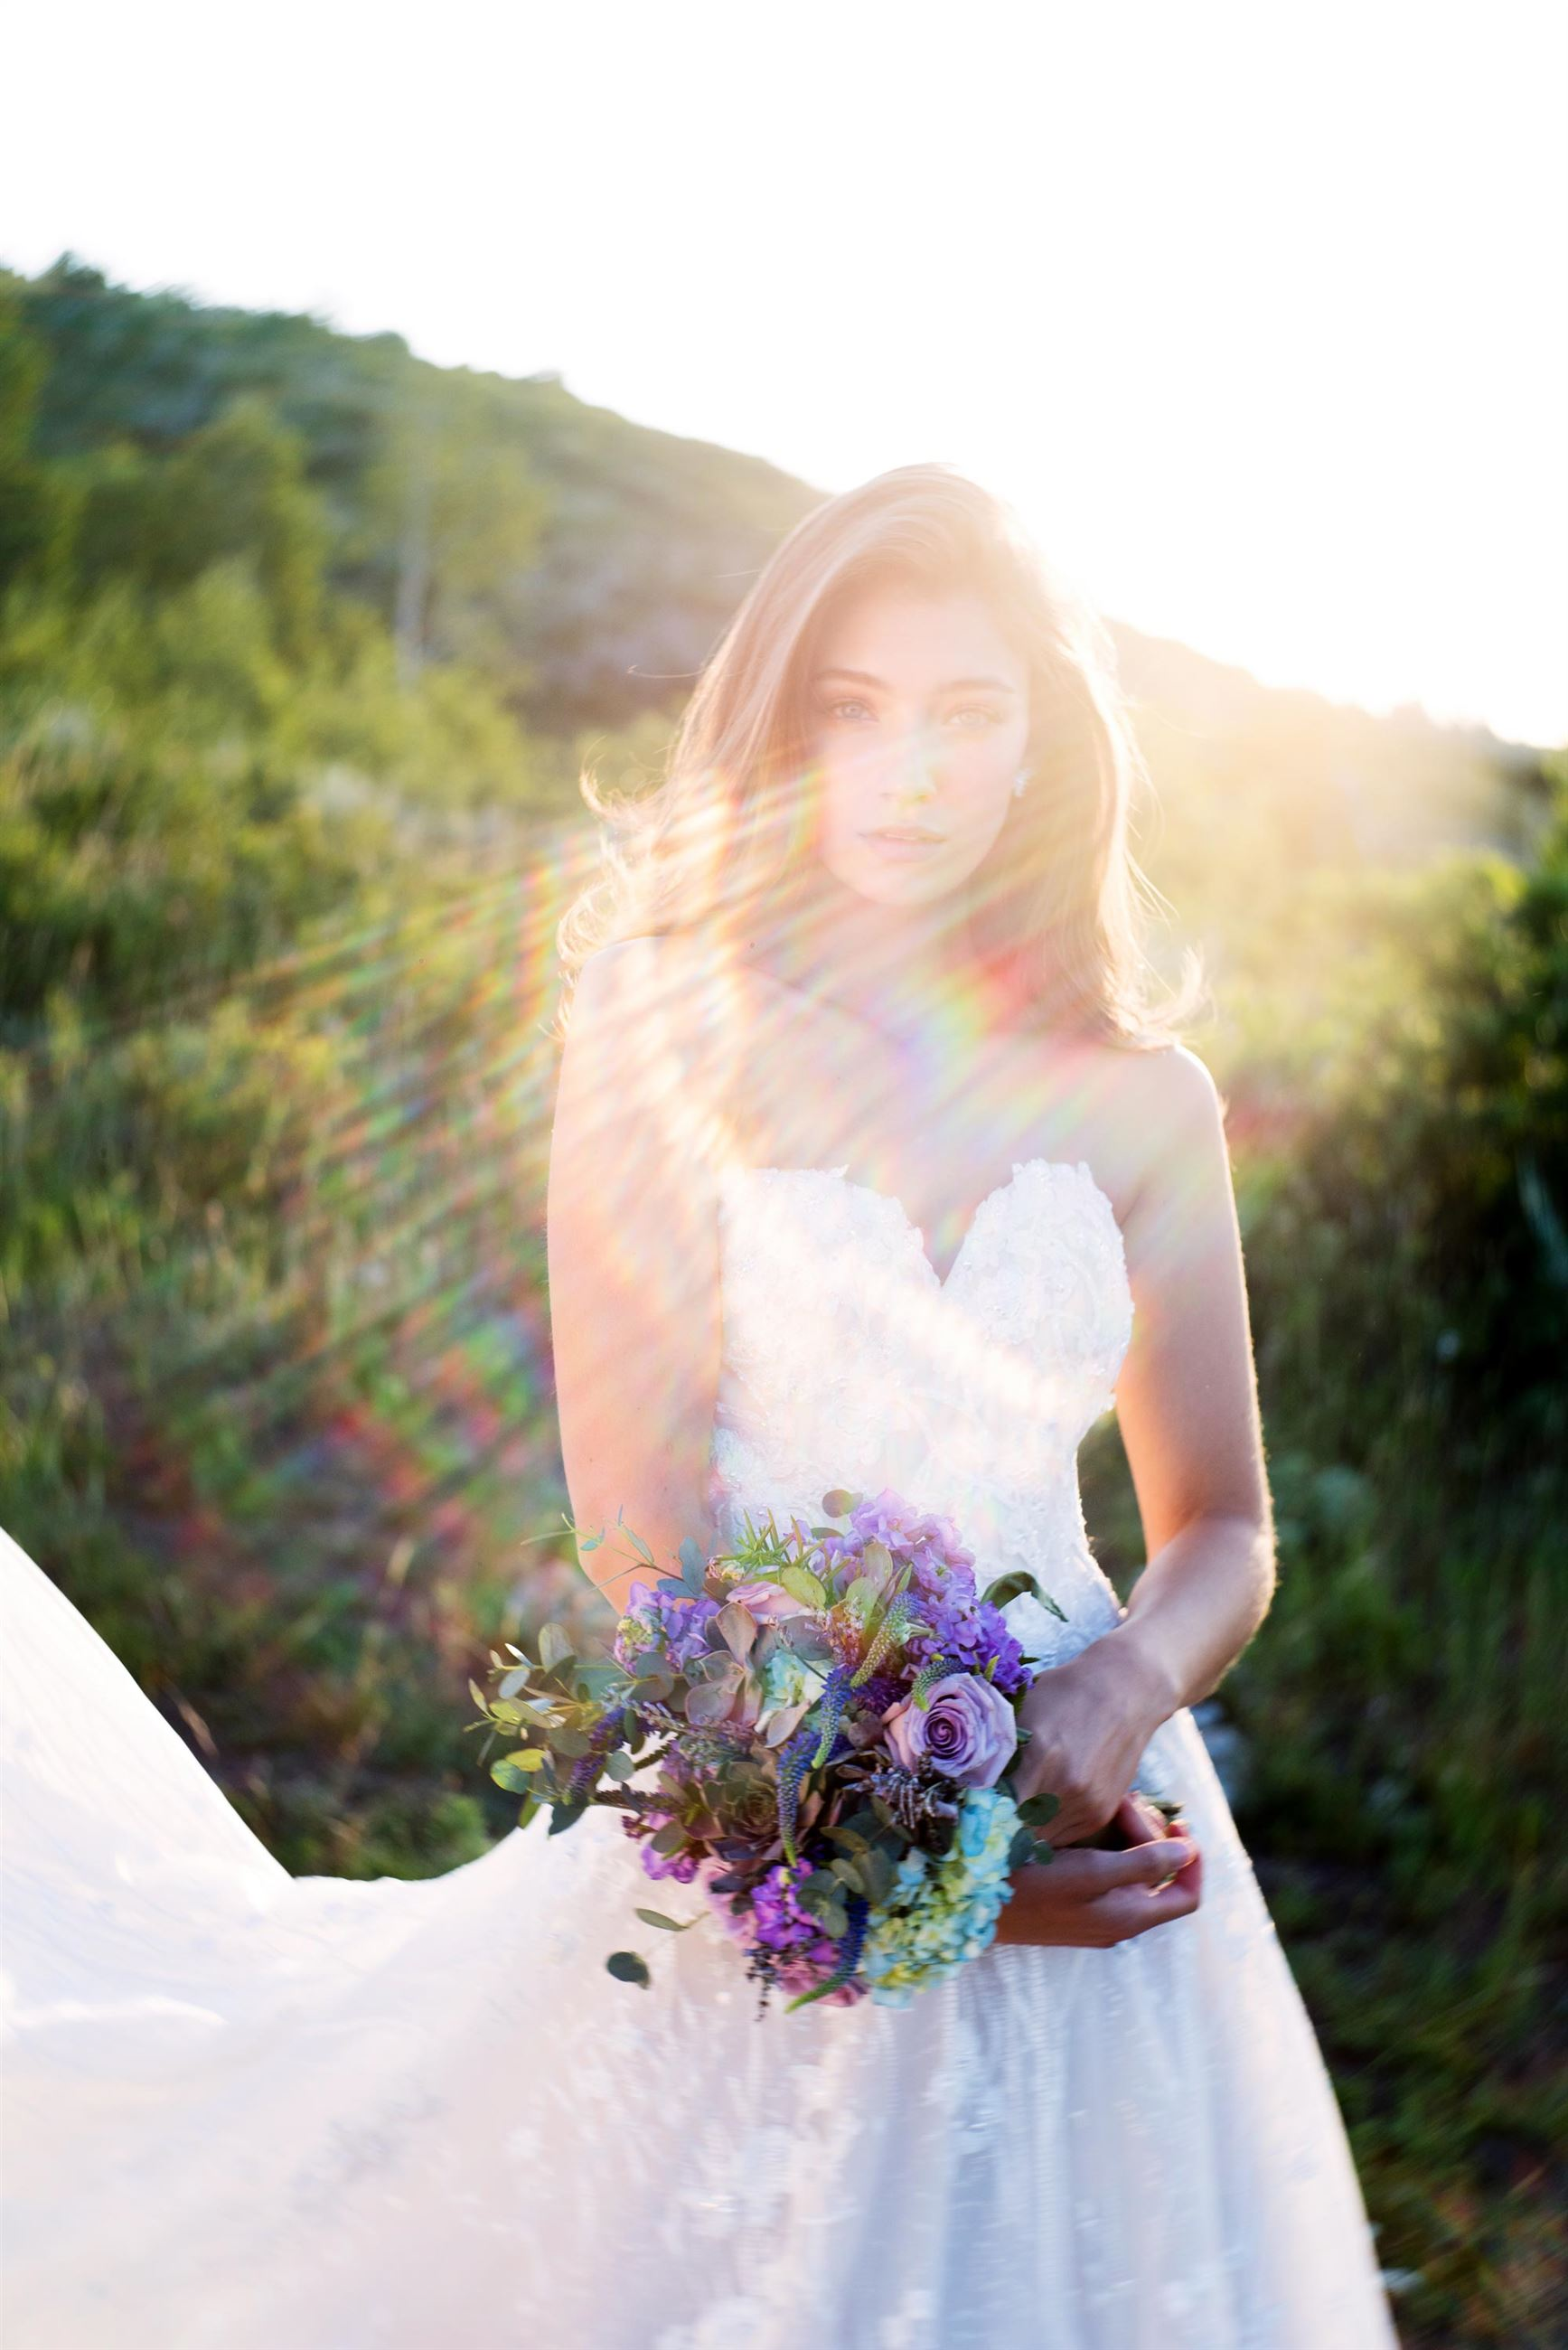 Brunette bride in strapless wedding dress holding flowers